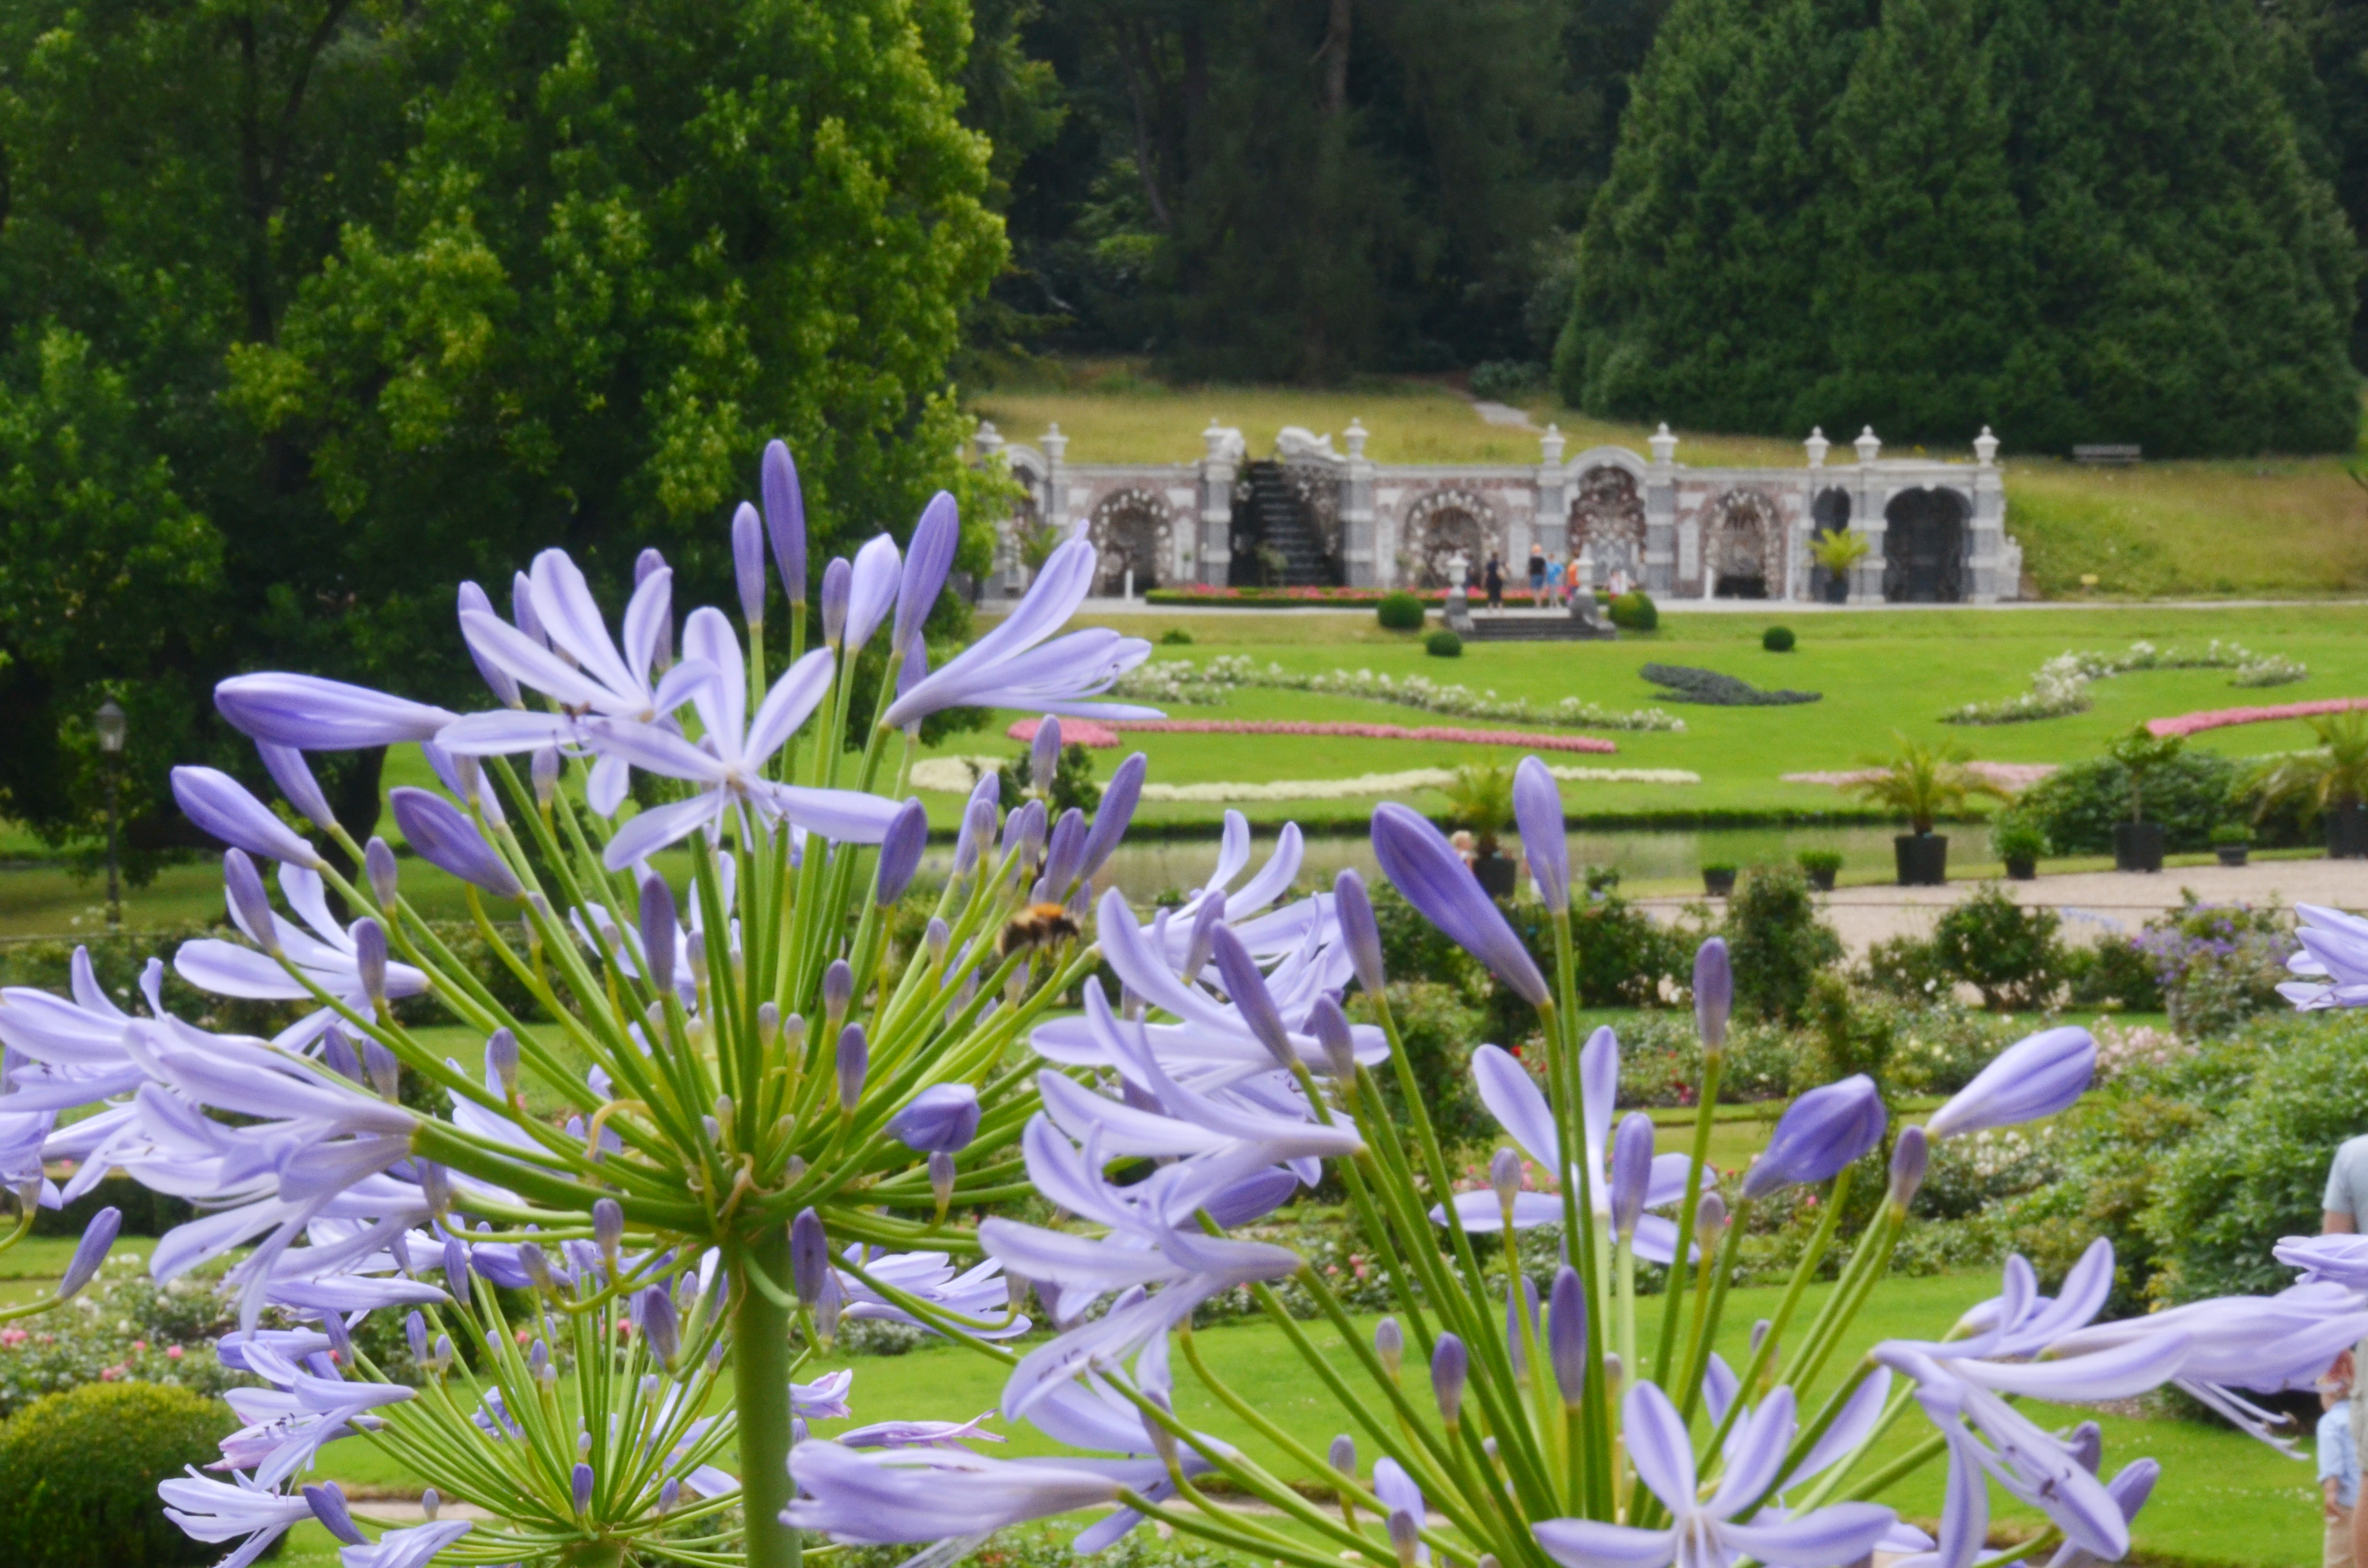 file:the rozendaal castle shell gallery through a nice agapanthus